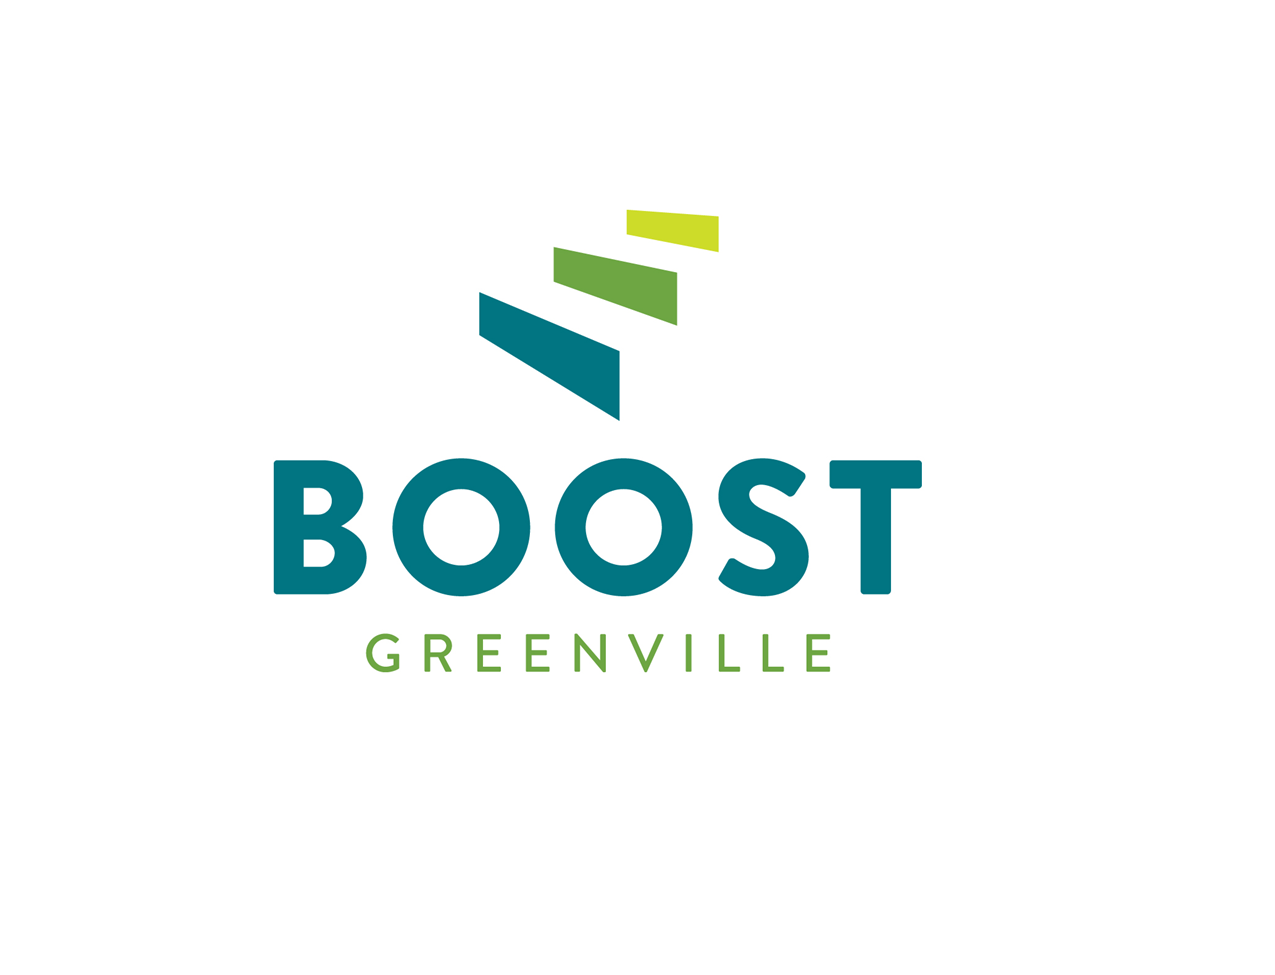 Boost Greenville teams up with Greenville Co. Schools